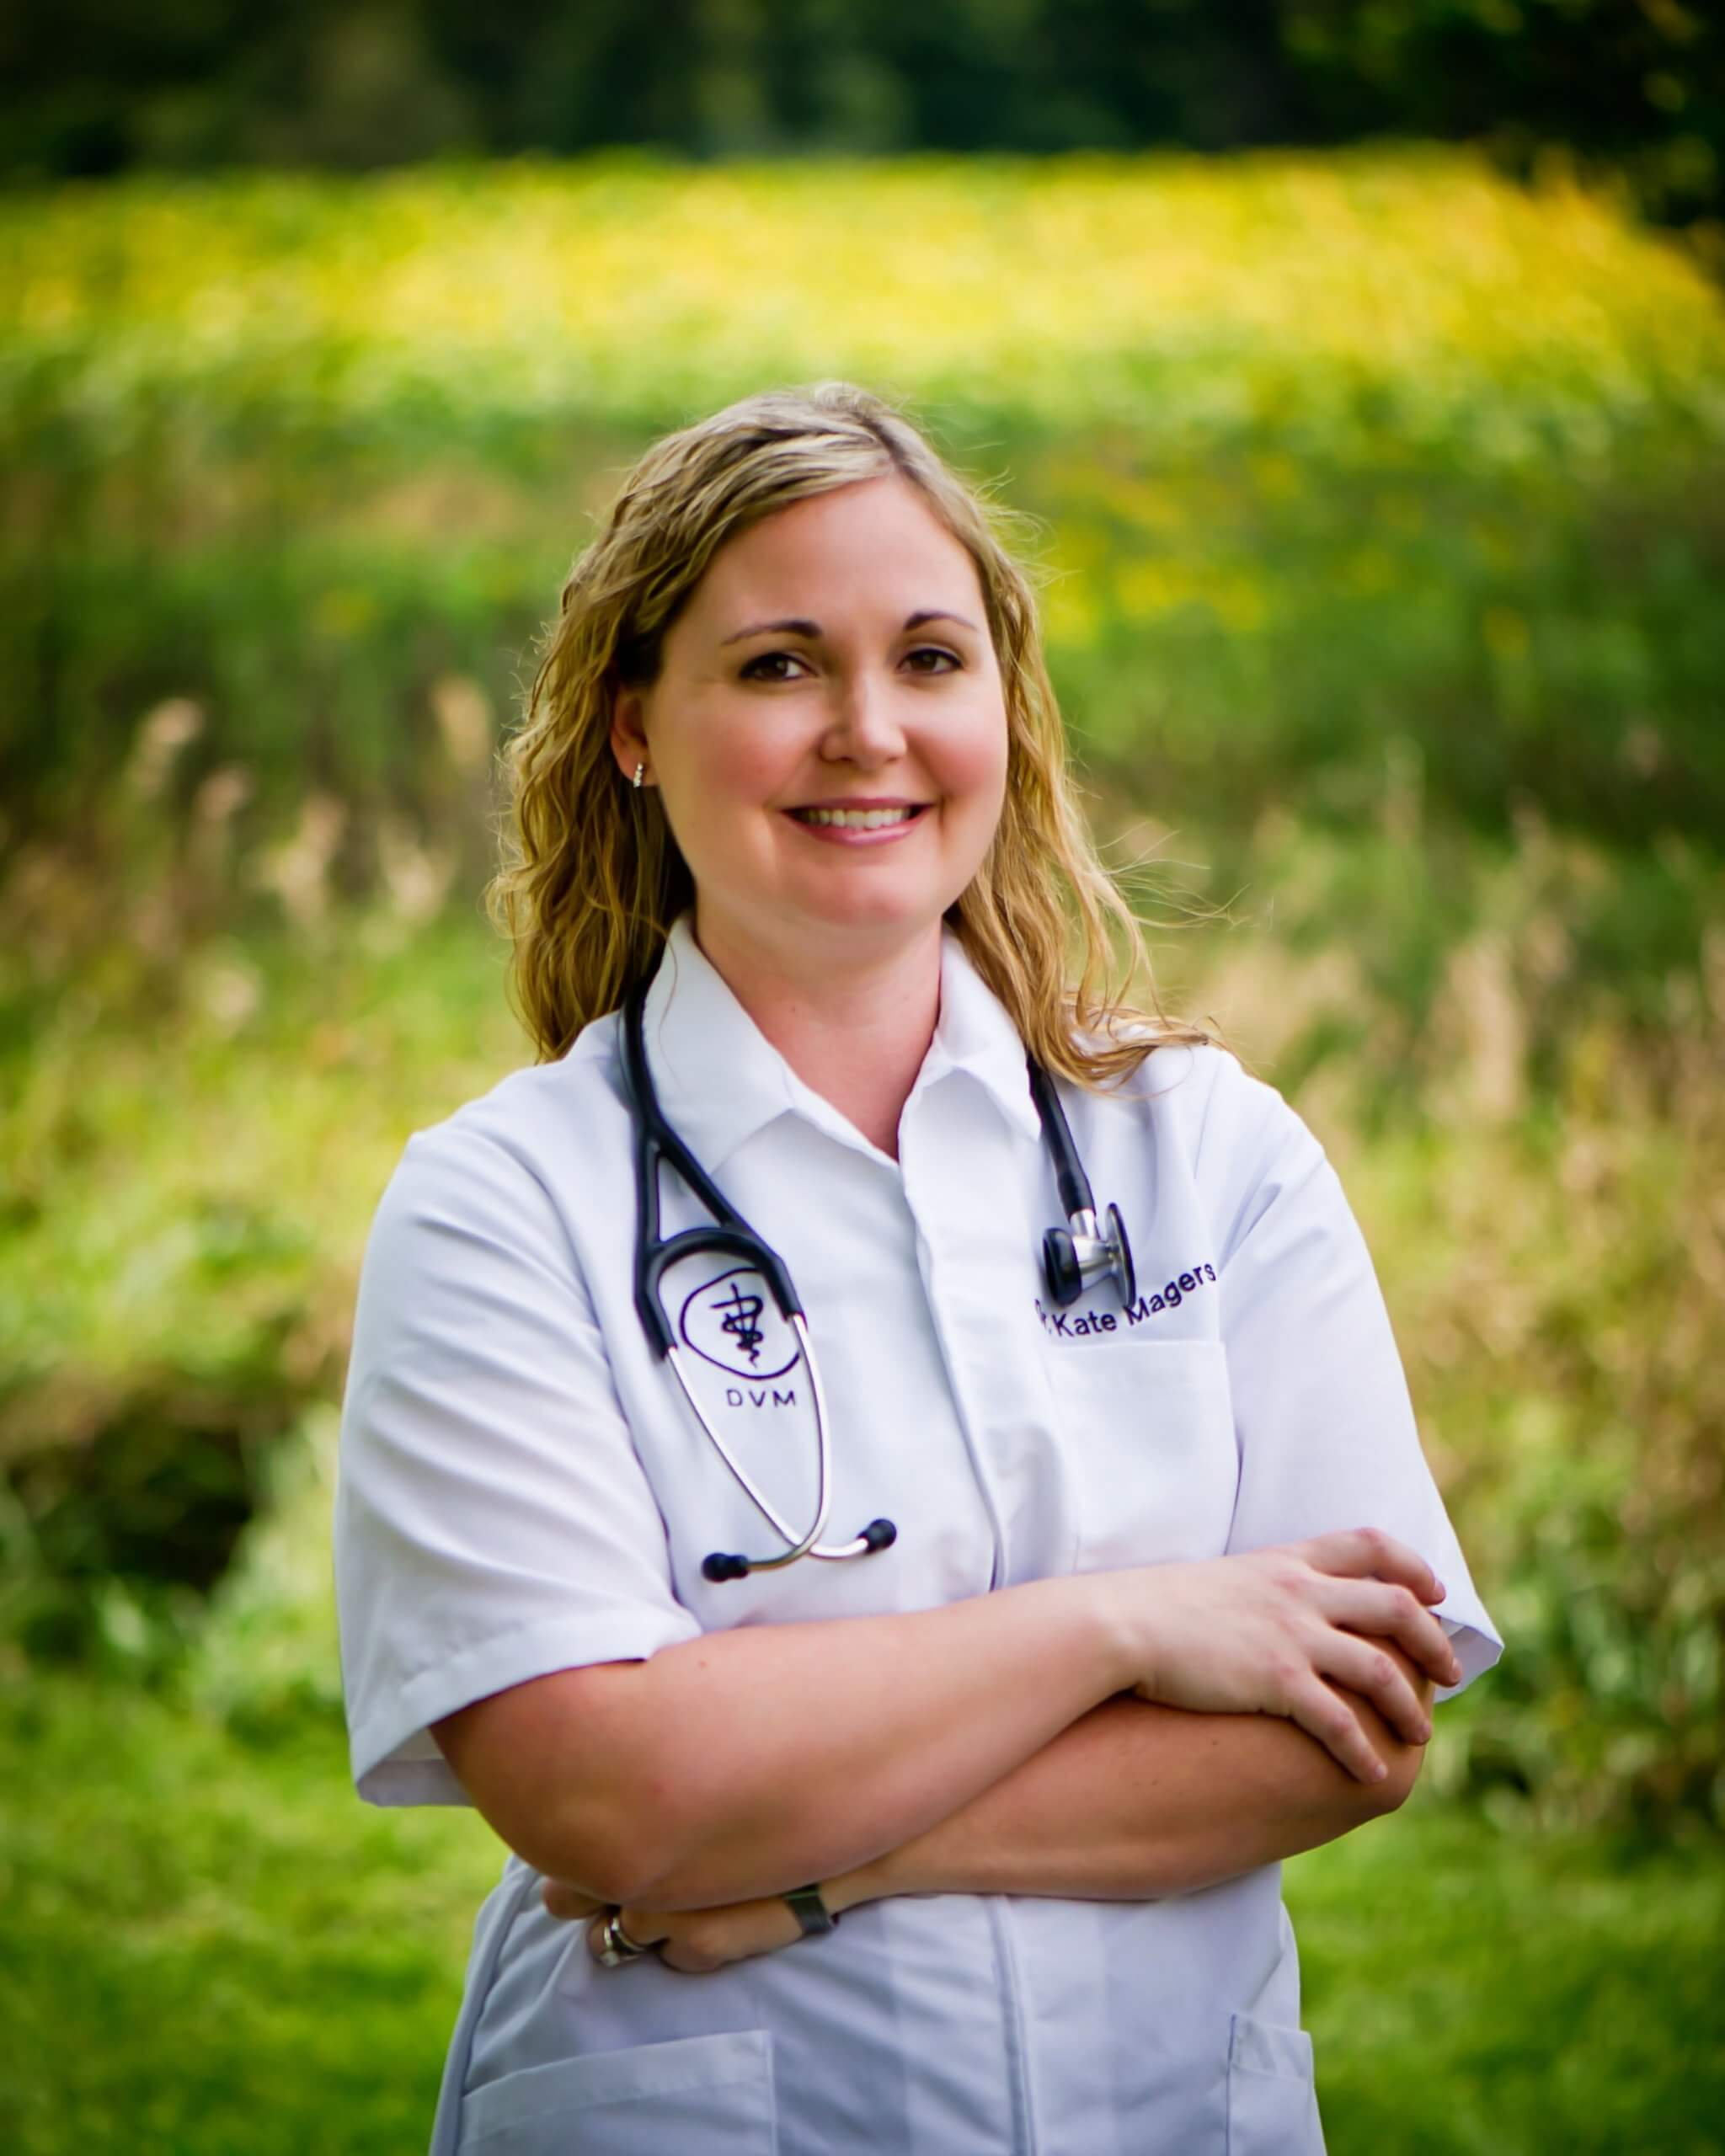 Dr. Kate Magers